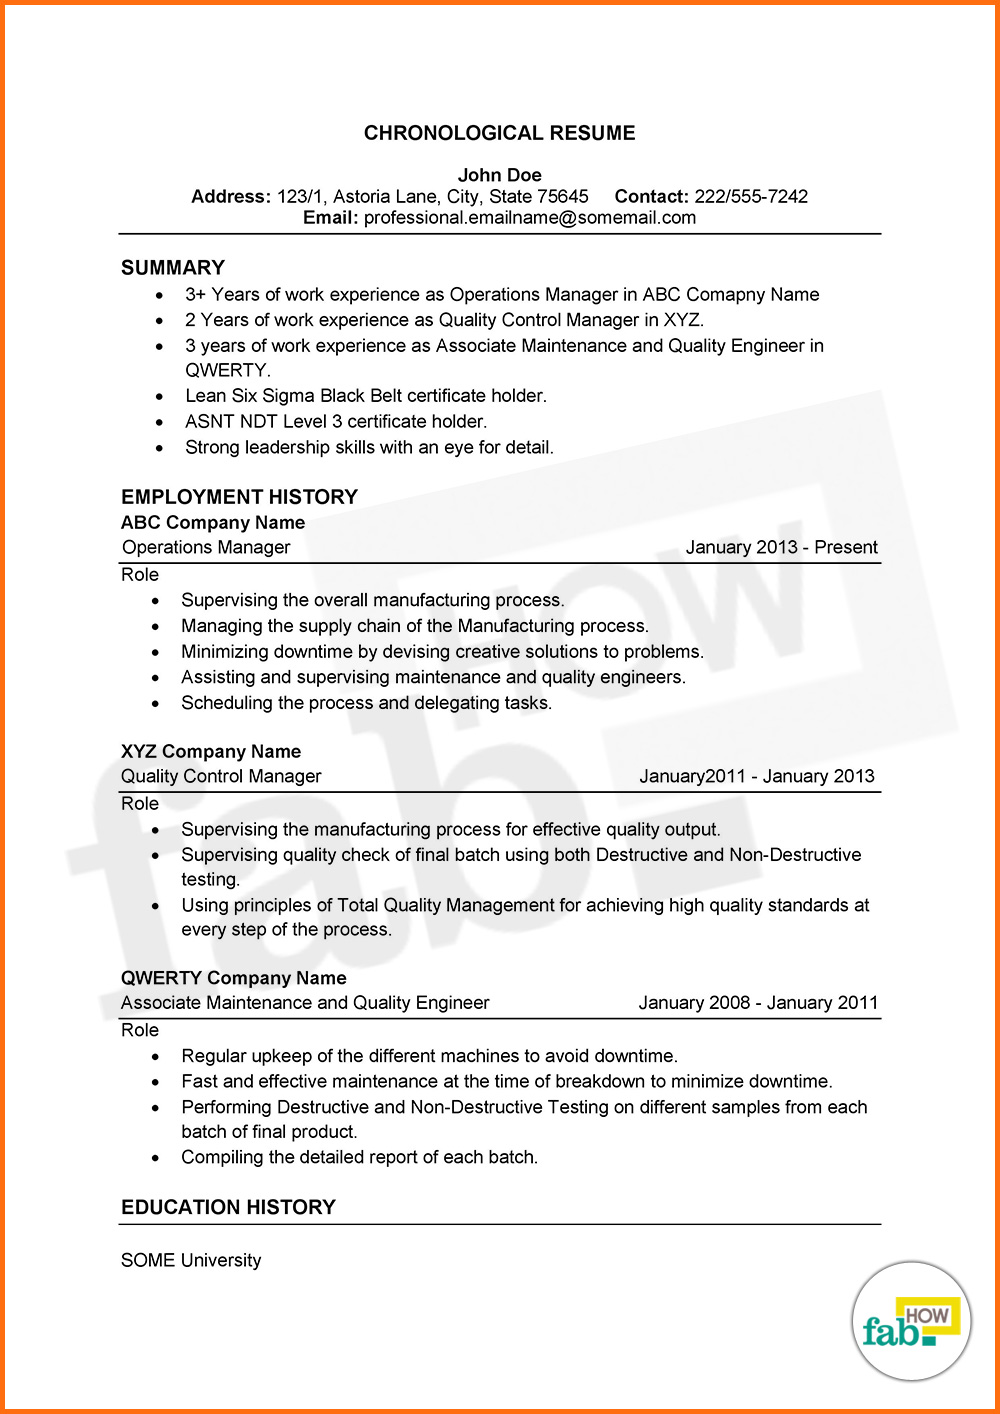 chronological resume sles free best free simple